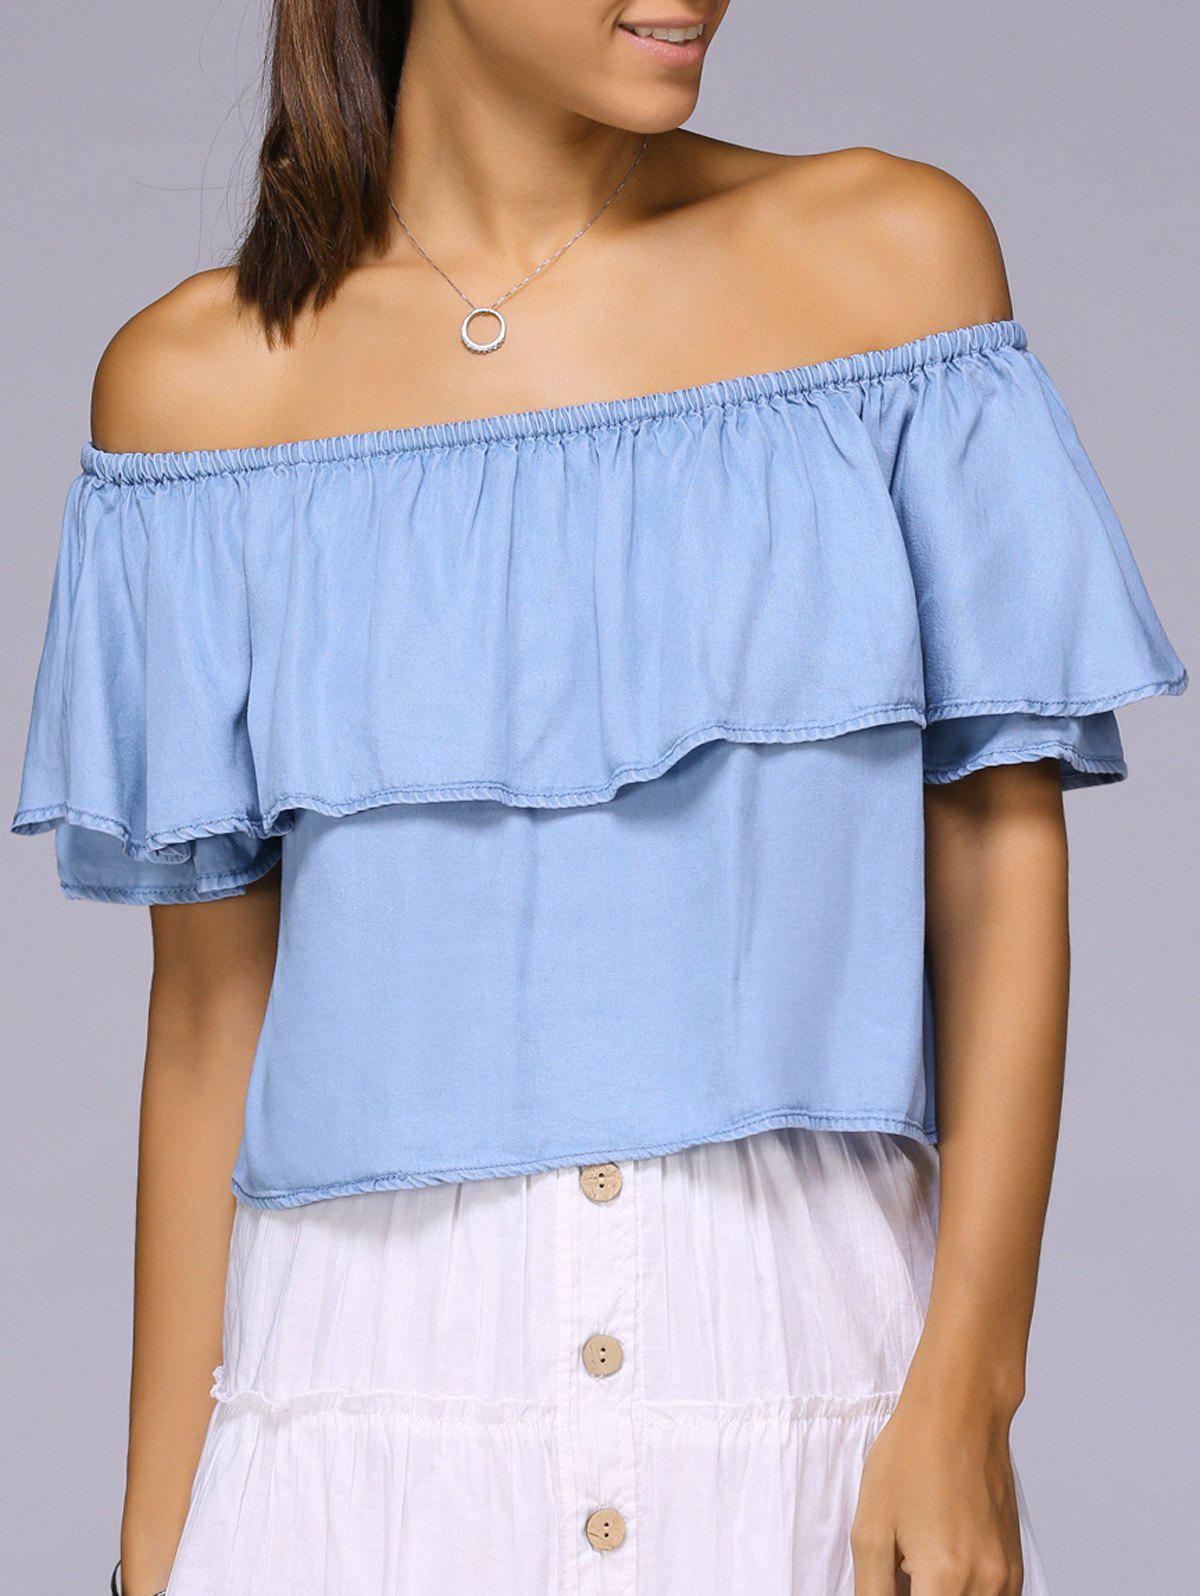 Off The Shoulder Flounced Solid Color Blouse - LIGHT BLUE M